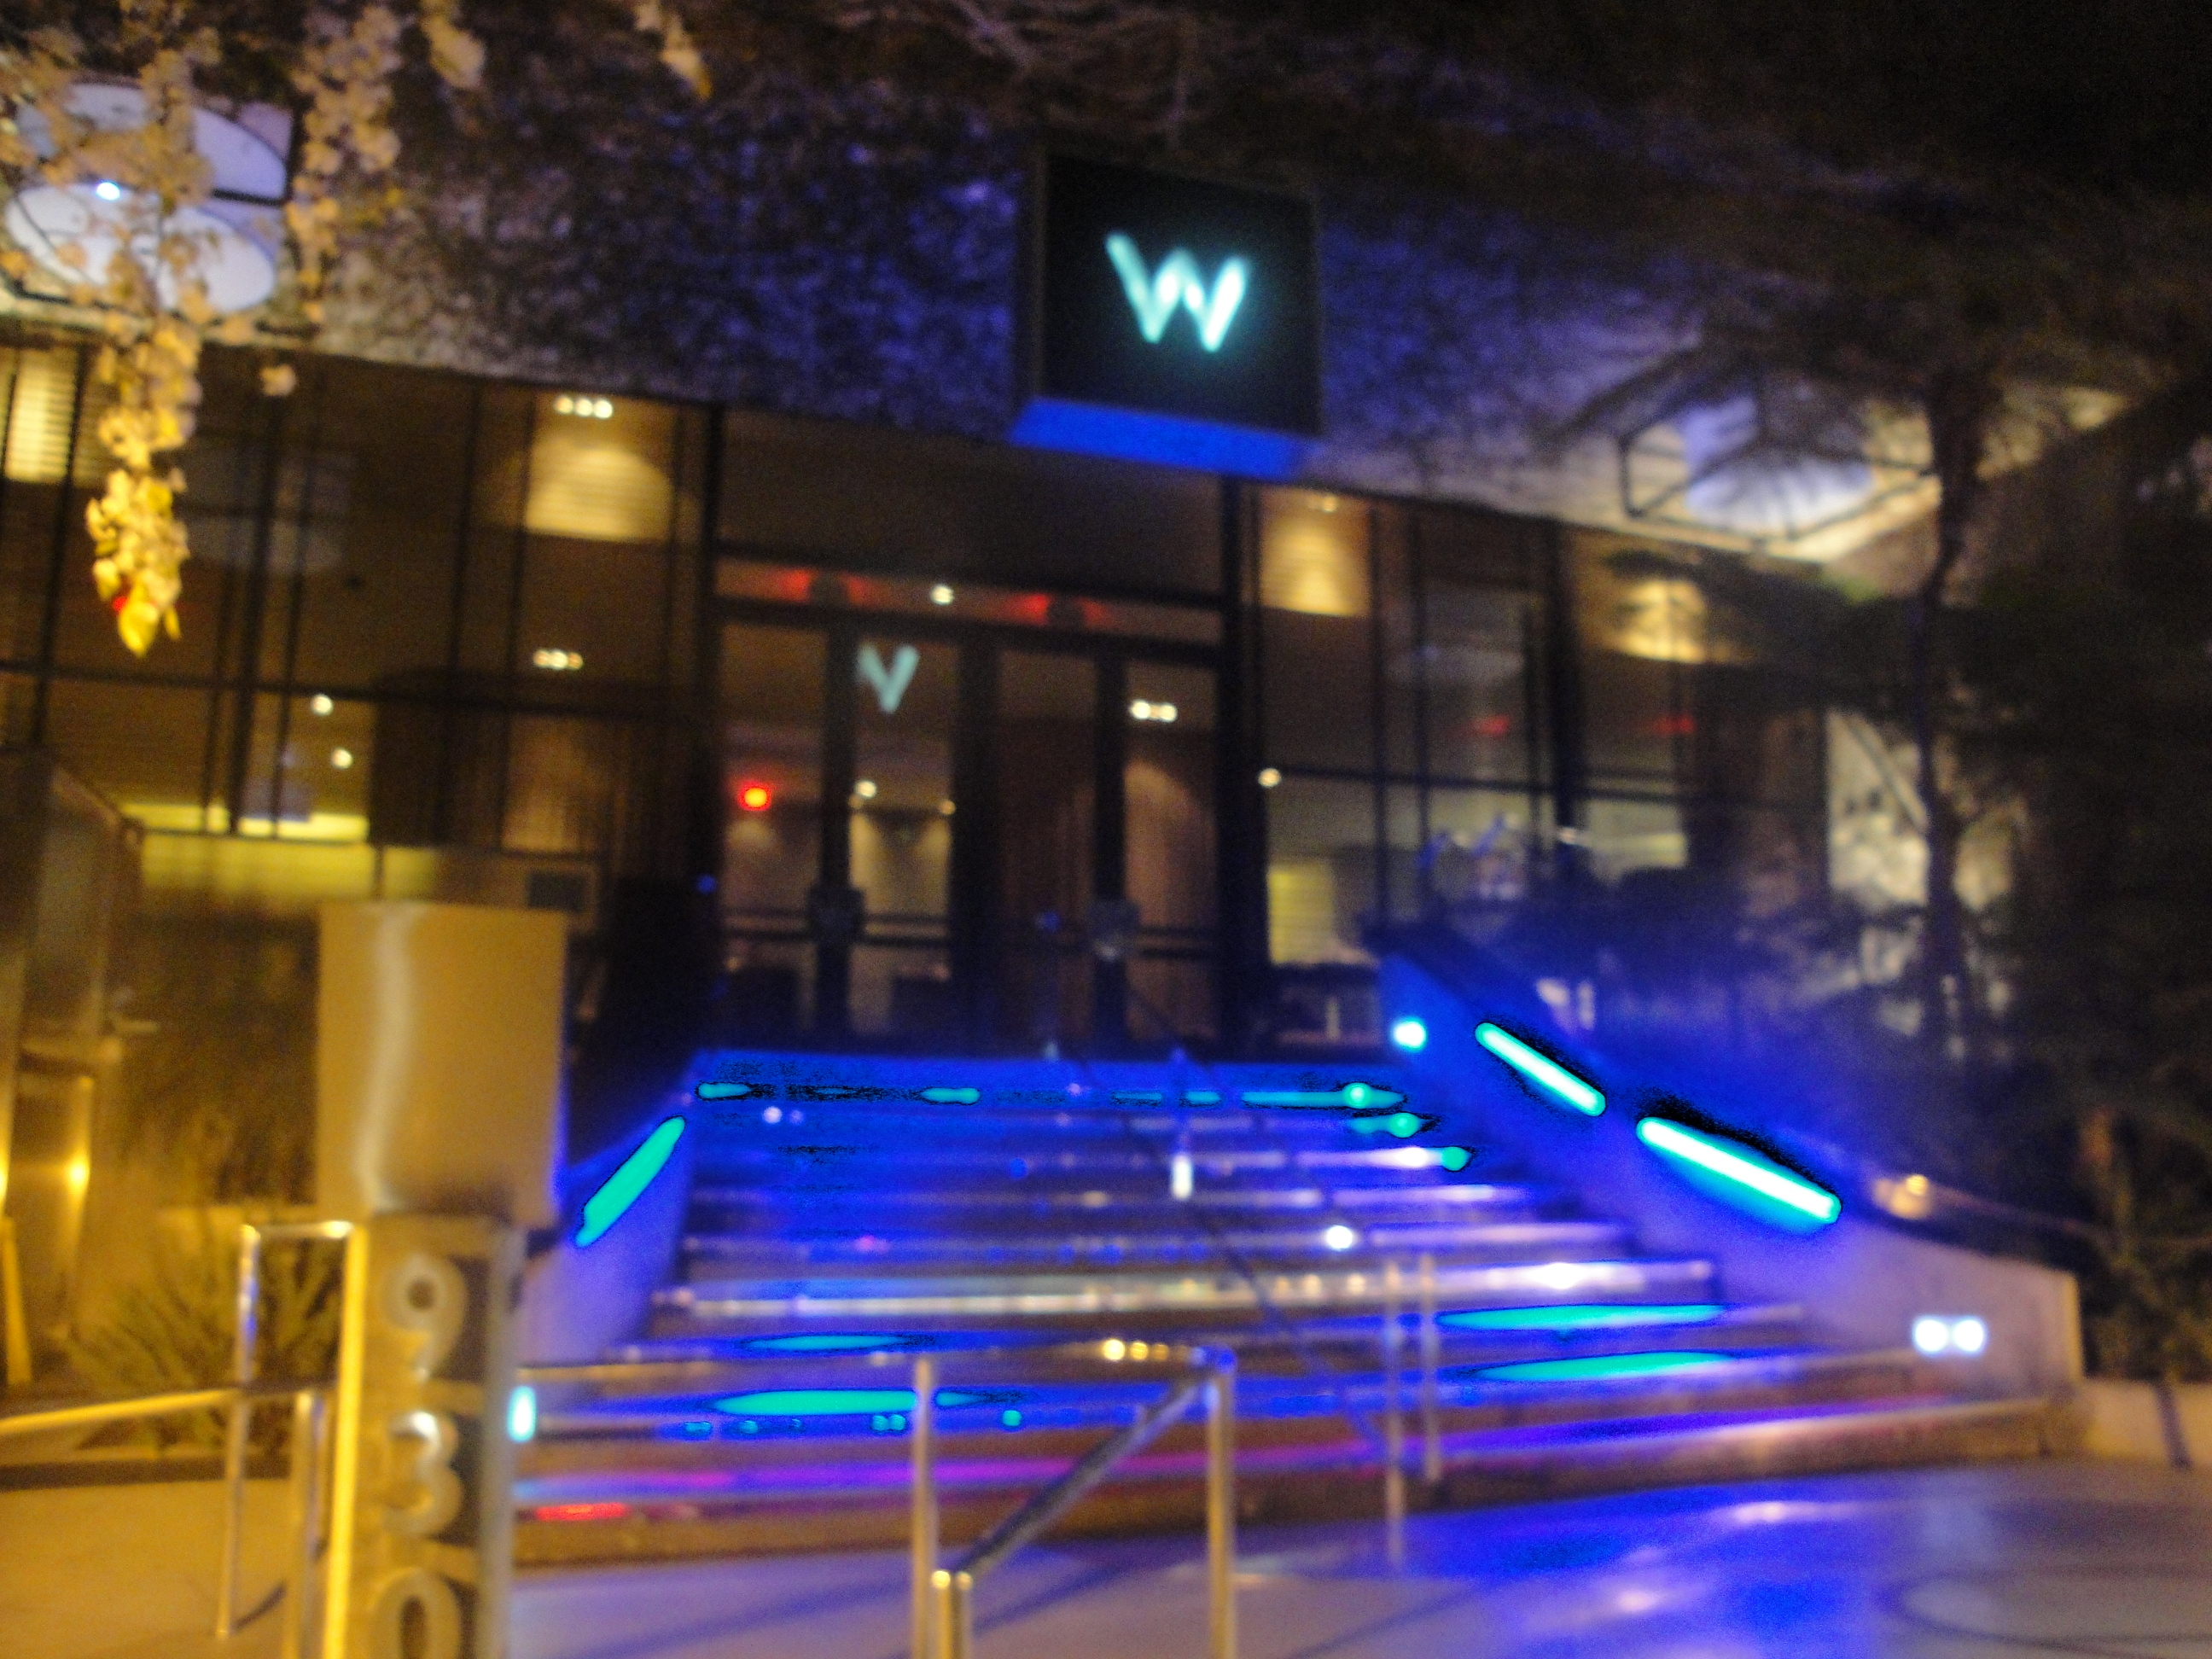 One Restaurant That Fits The Mold Of Trendy And Hip, But Yet Having A  Reputation For Good Food Is The NineThirty Located Inside The W Hotel In  Westwood.